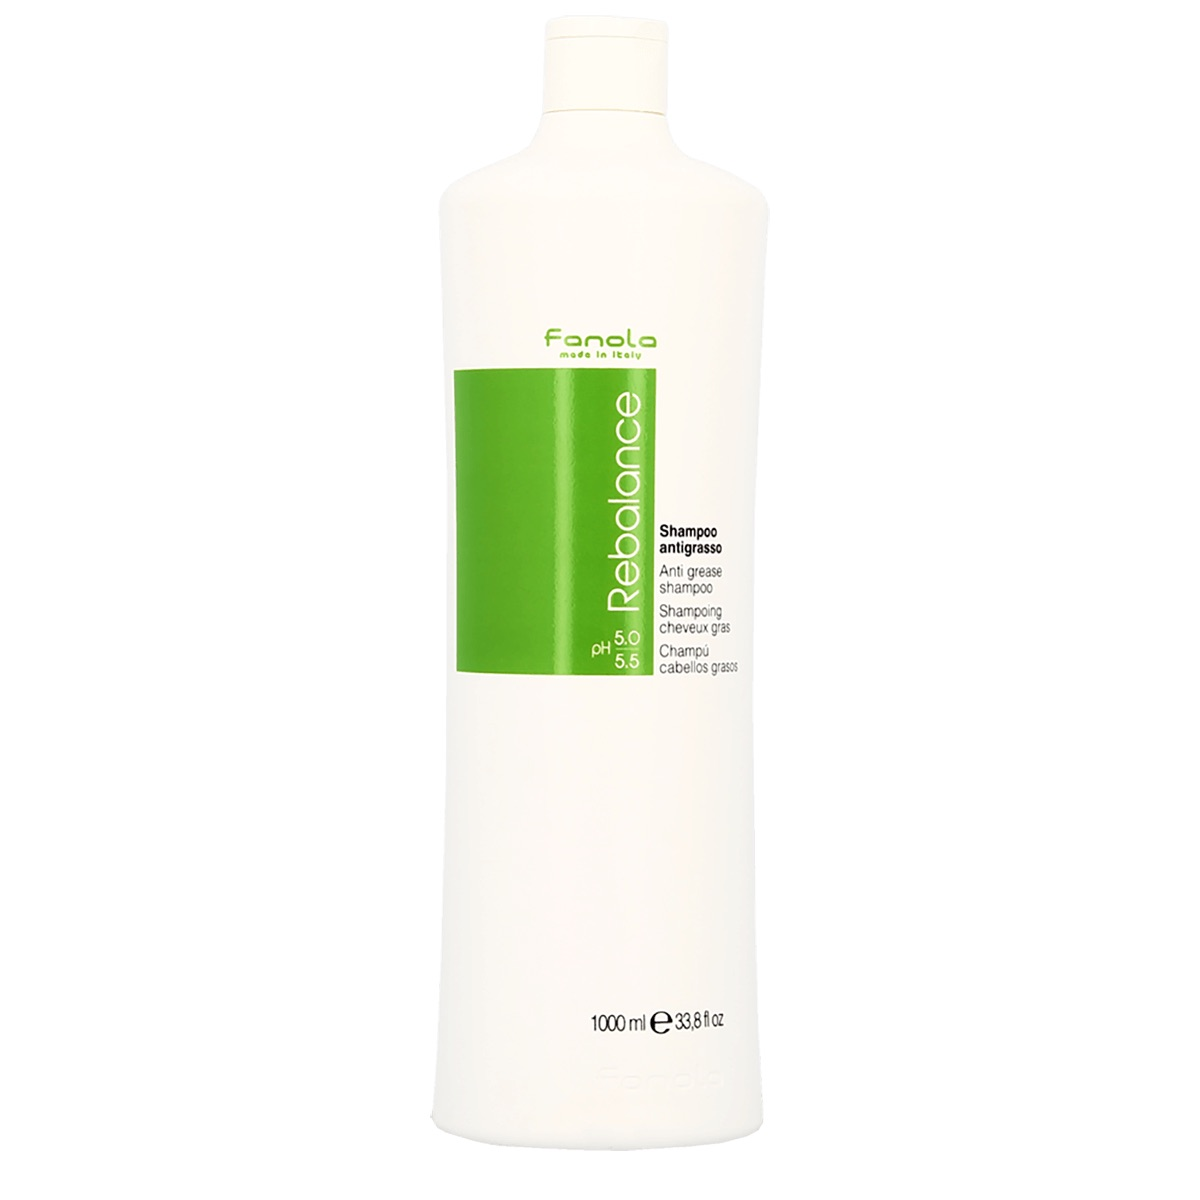 FANOLA Rebalance Anti Grease Shampoo 1000 ml